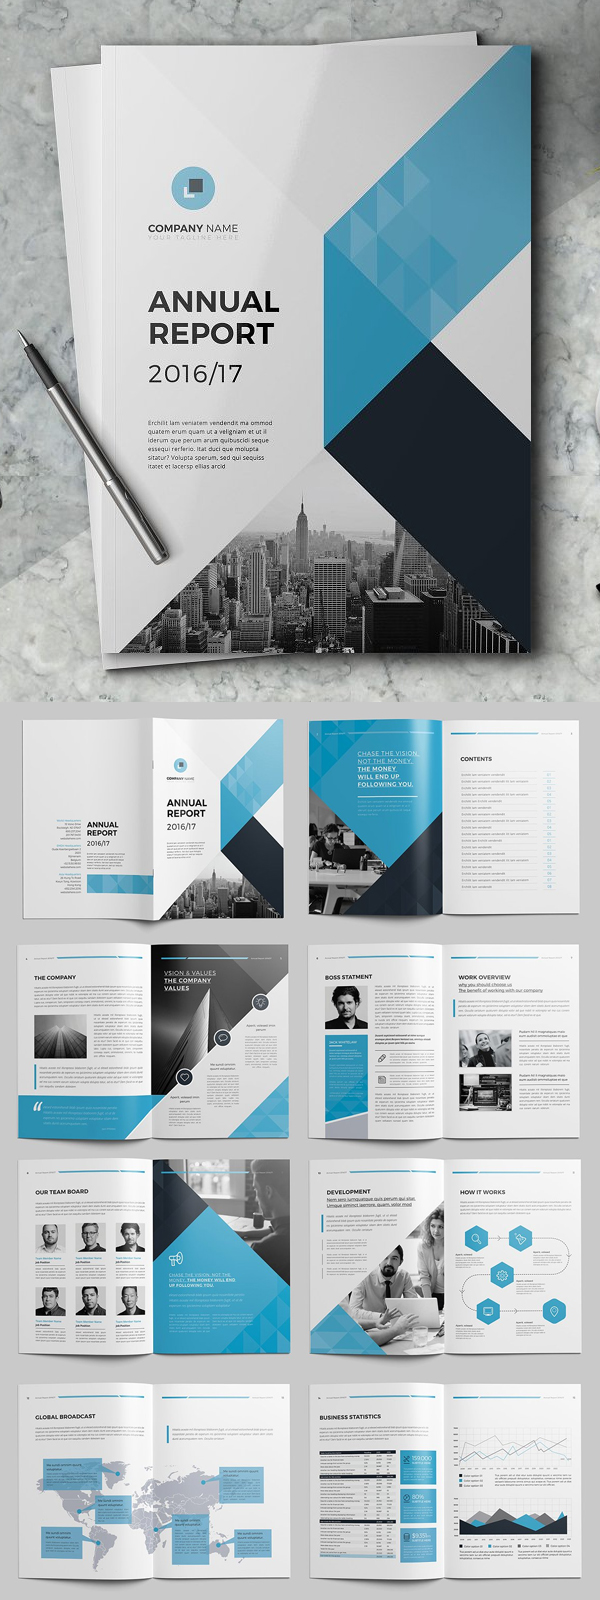 Professional Annual Report